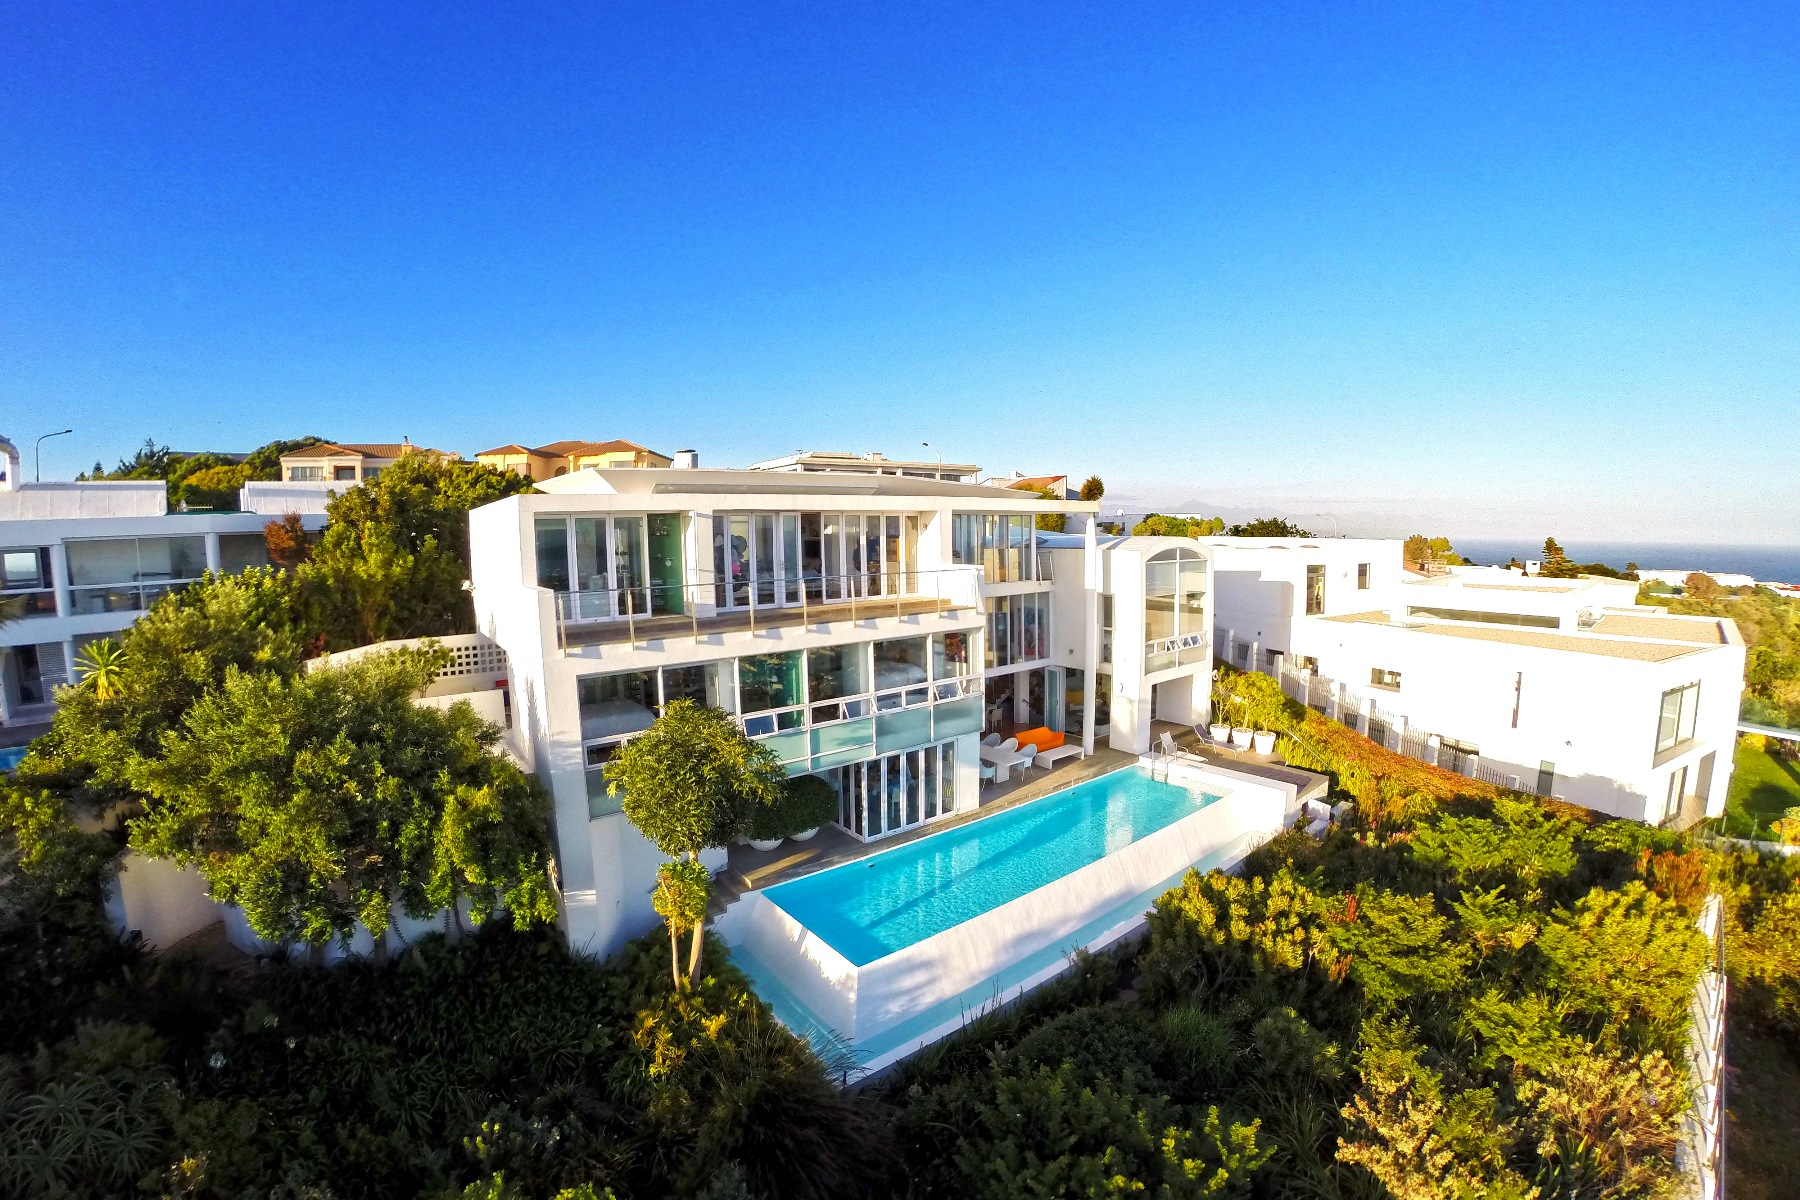 Single Family Home for Sale at Excellent sea view home-architecturally designed Plettenberg Bay, Western Cape, 6600 South Africa